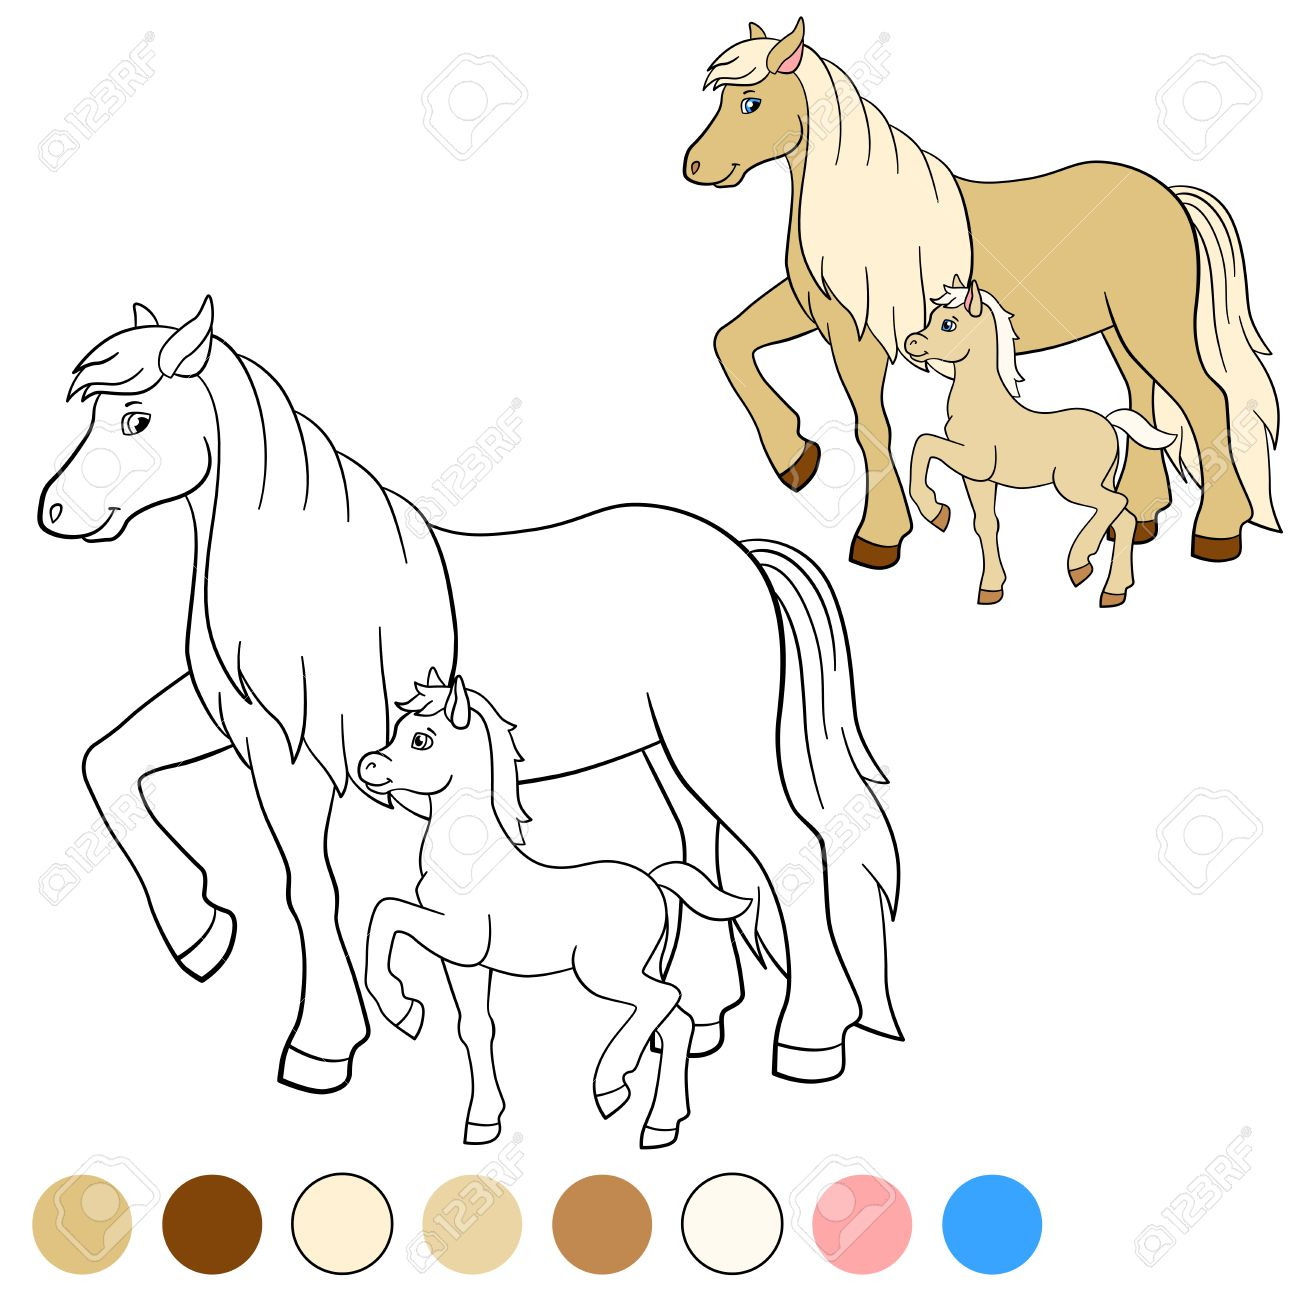 Coloring Page Color Me Horse Mother Walks With Her Little Cute Foal